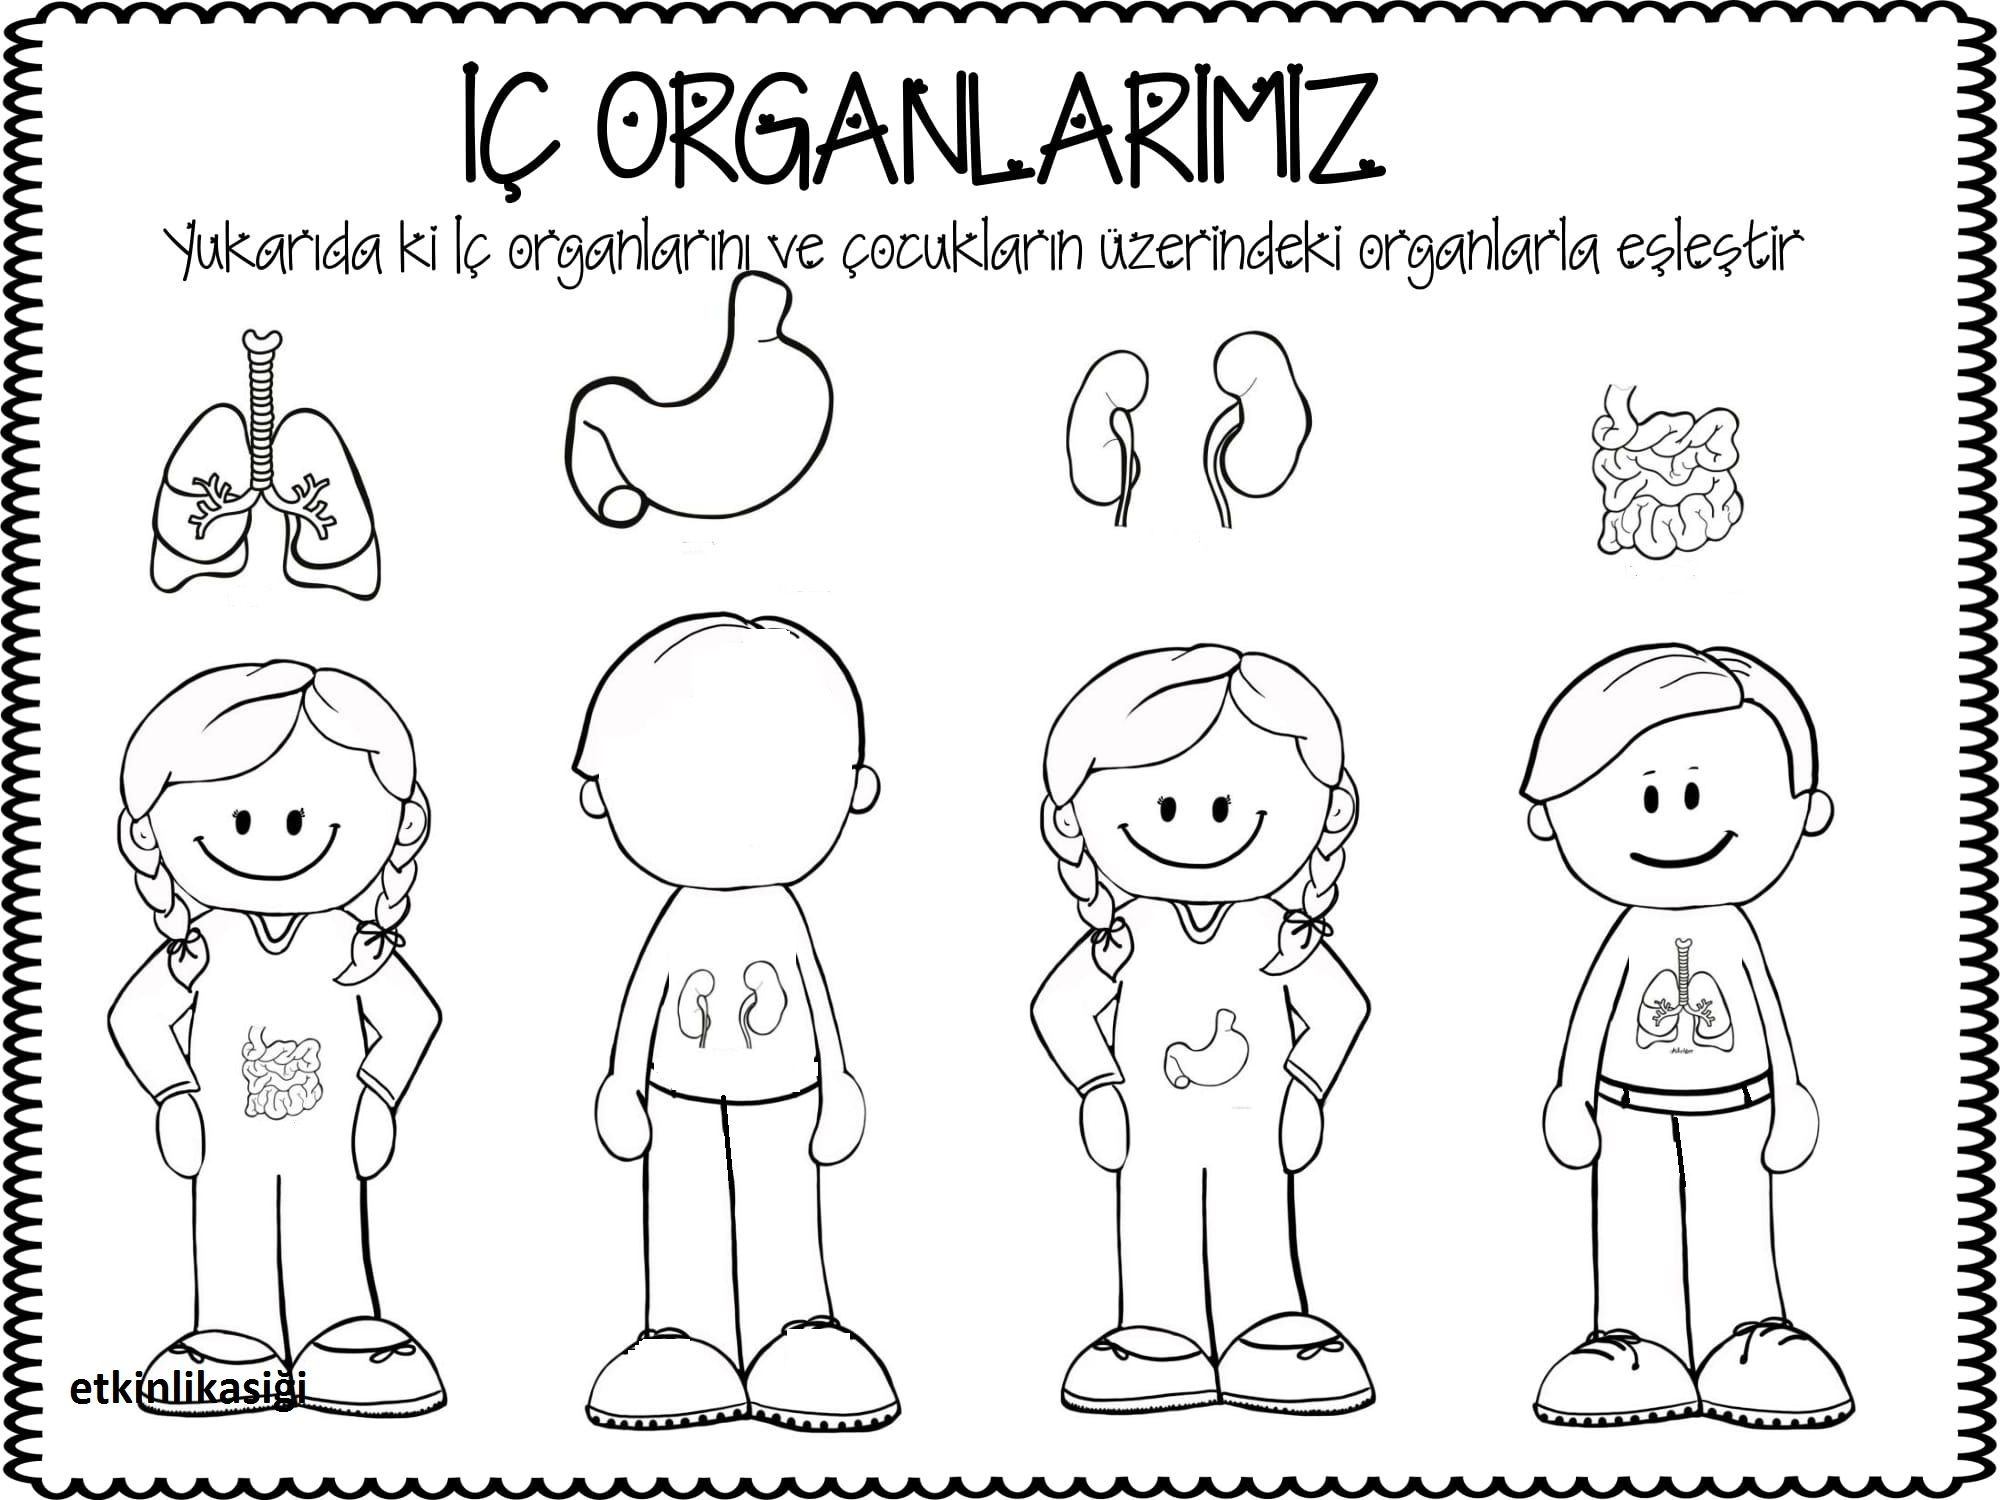 Iç Organlarim Etkinlikasigi Working Pages Preschool Education